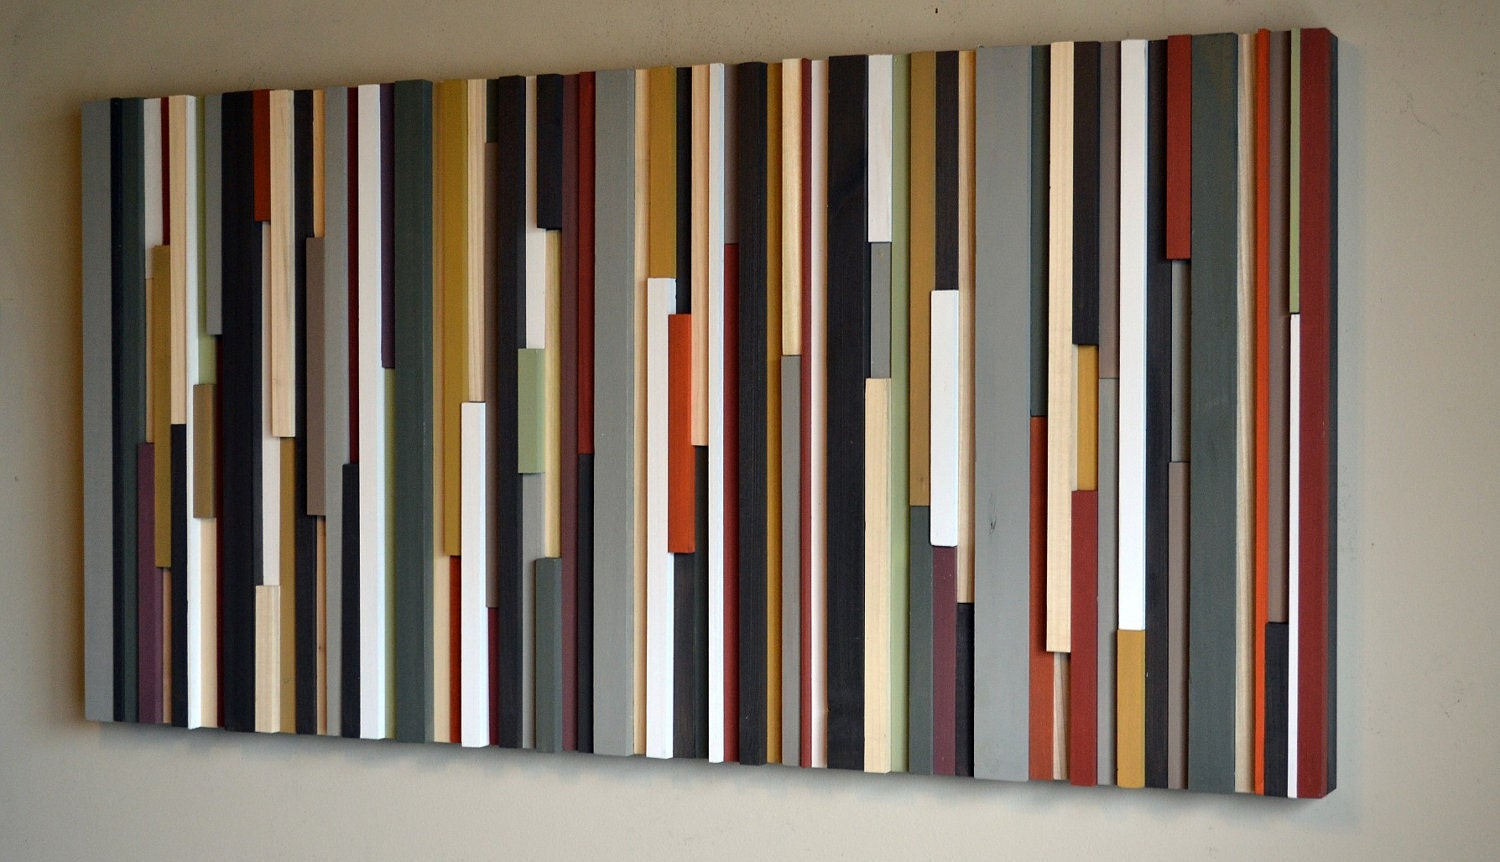 Wood sculpture wall art lines 24 x 48 - Wall arts images ...